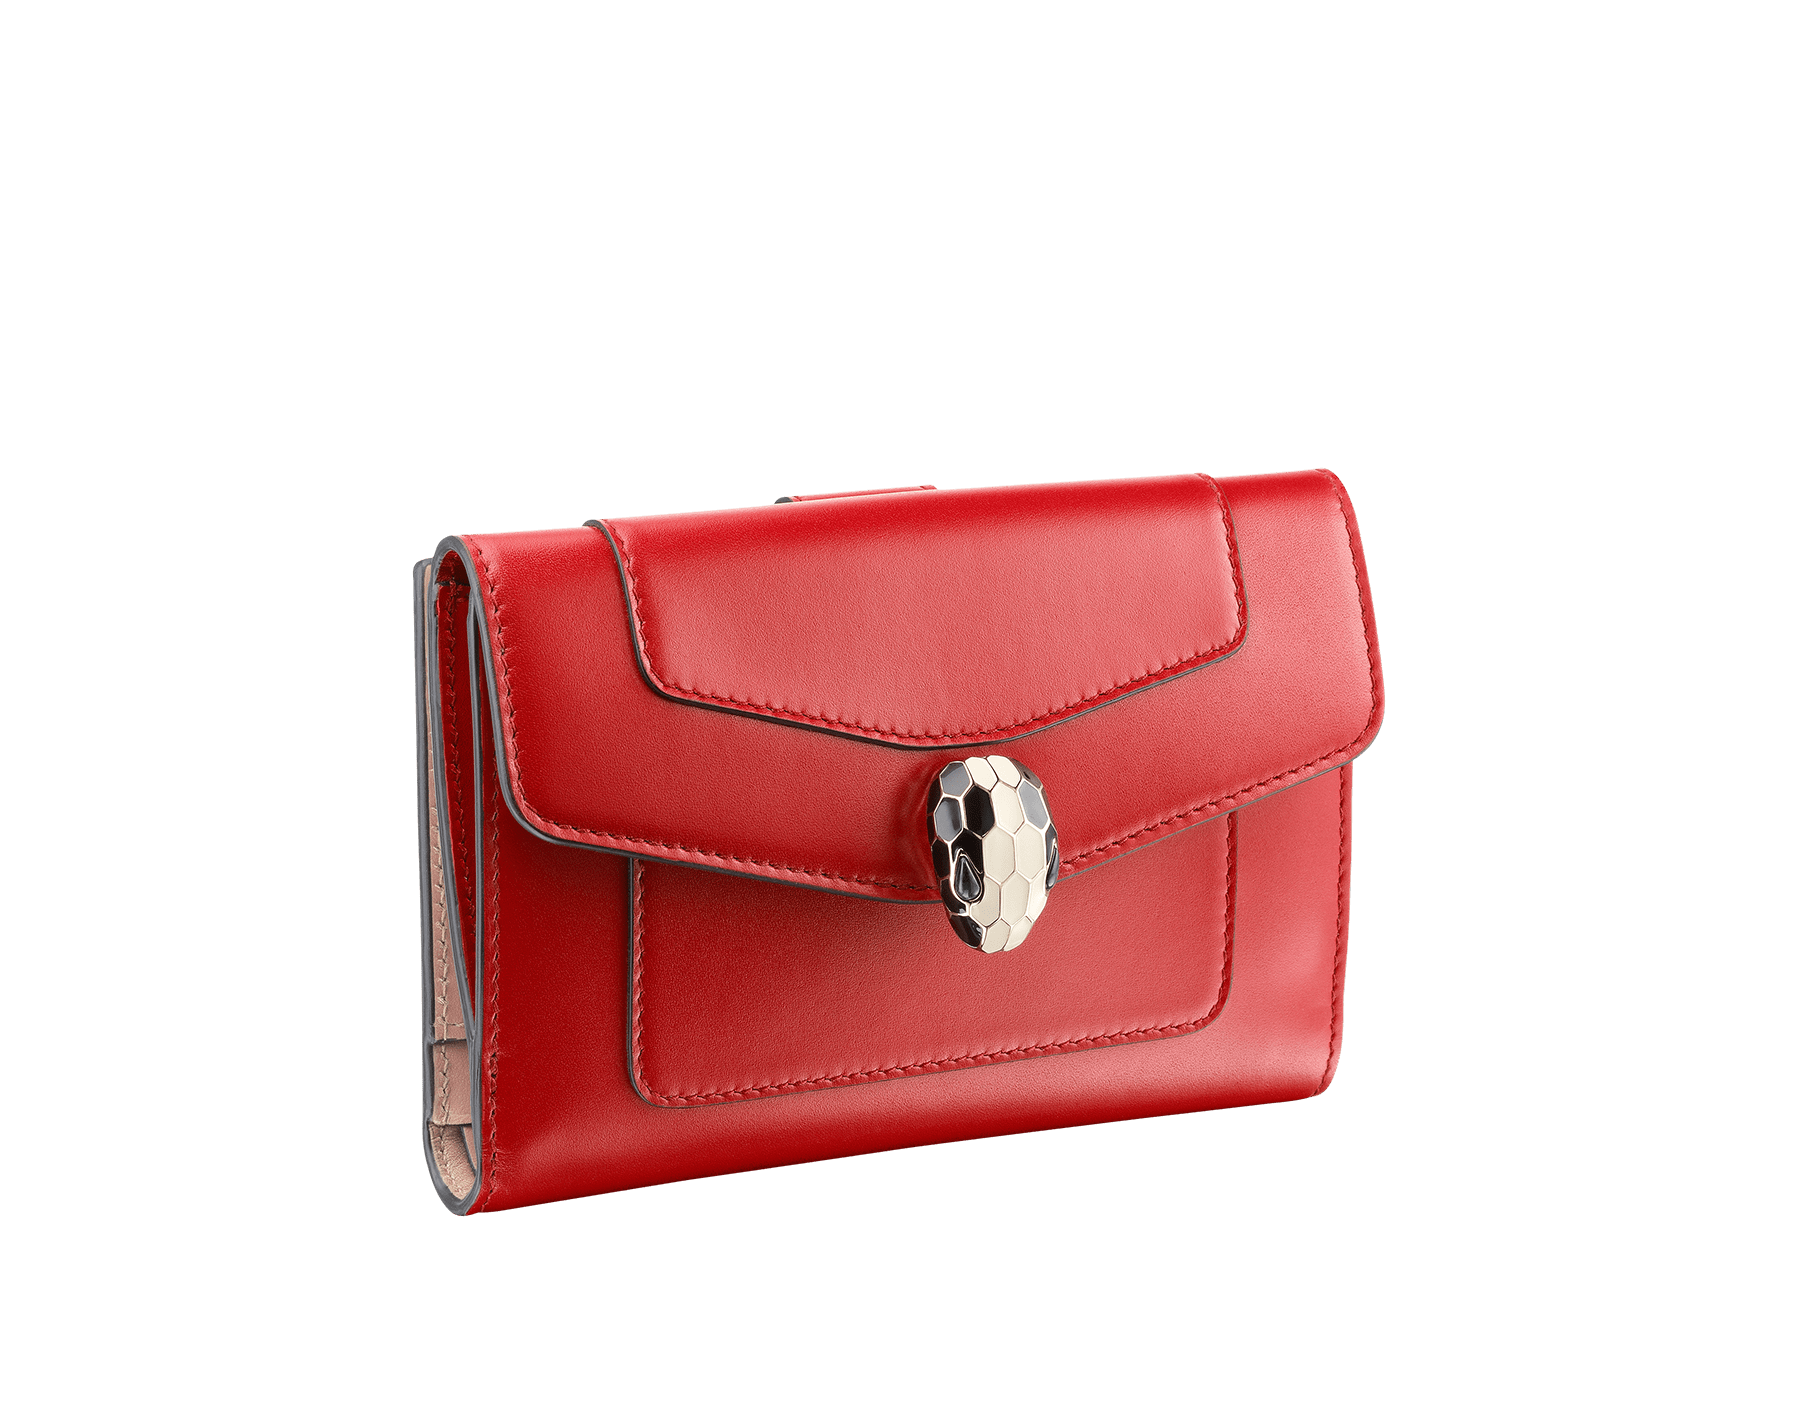 Compact pochette in ruby red calf leather, desert quartz calf leather and fuxia nappa lining. Brass light gold plated Serpenti head stud closure with green malachite eyes. 282666 image 1